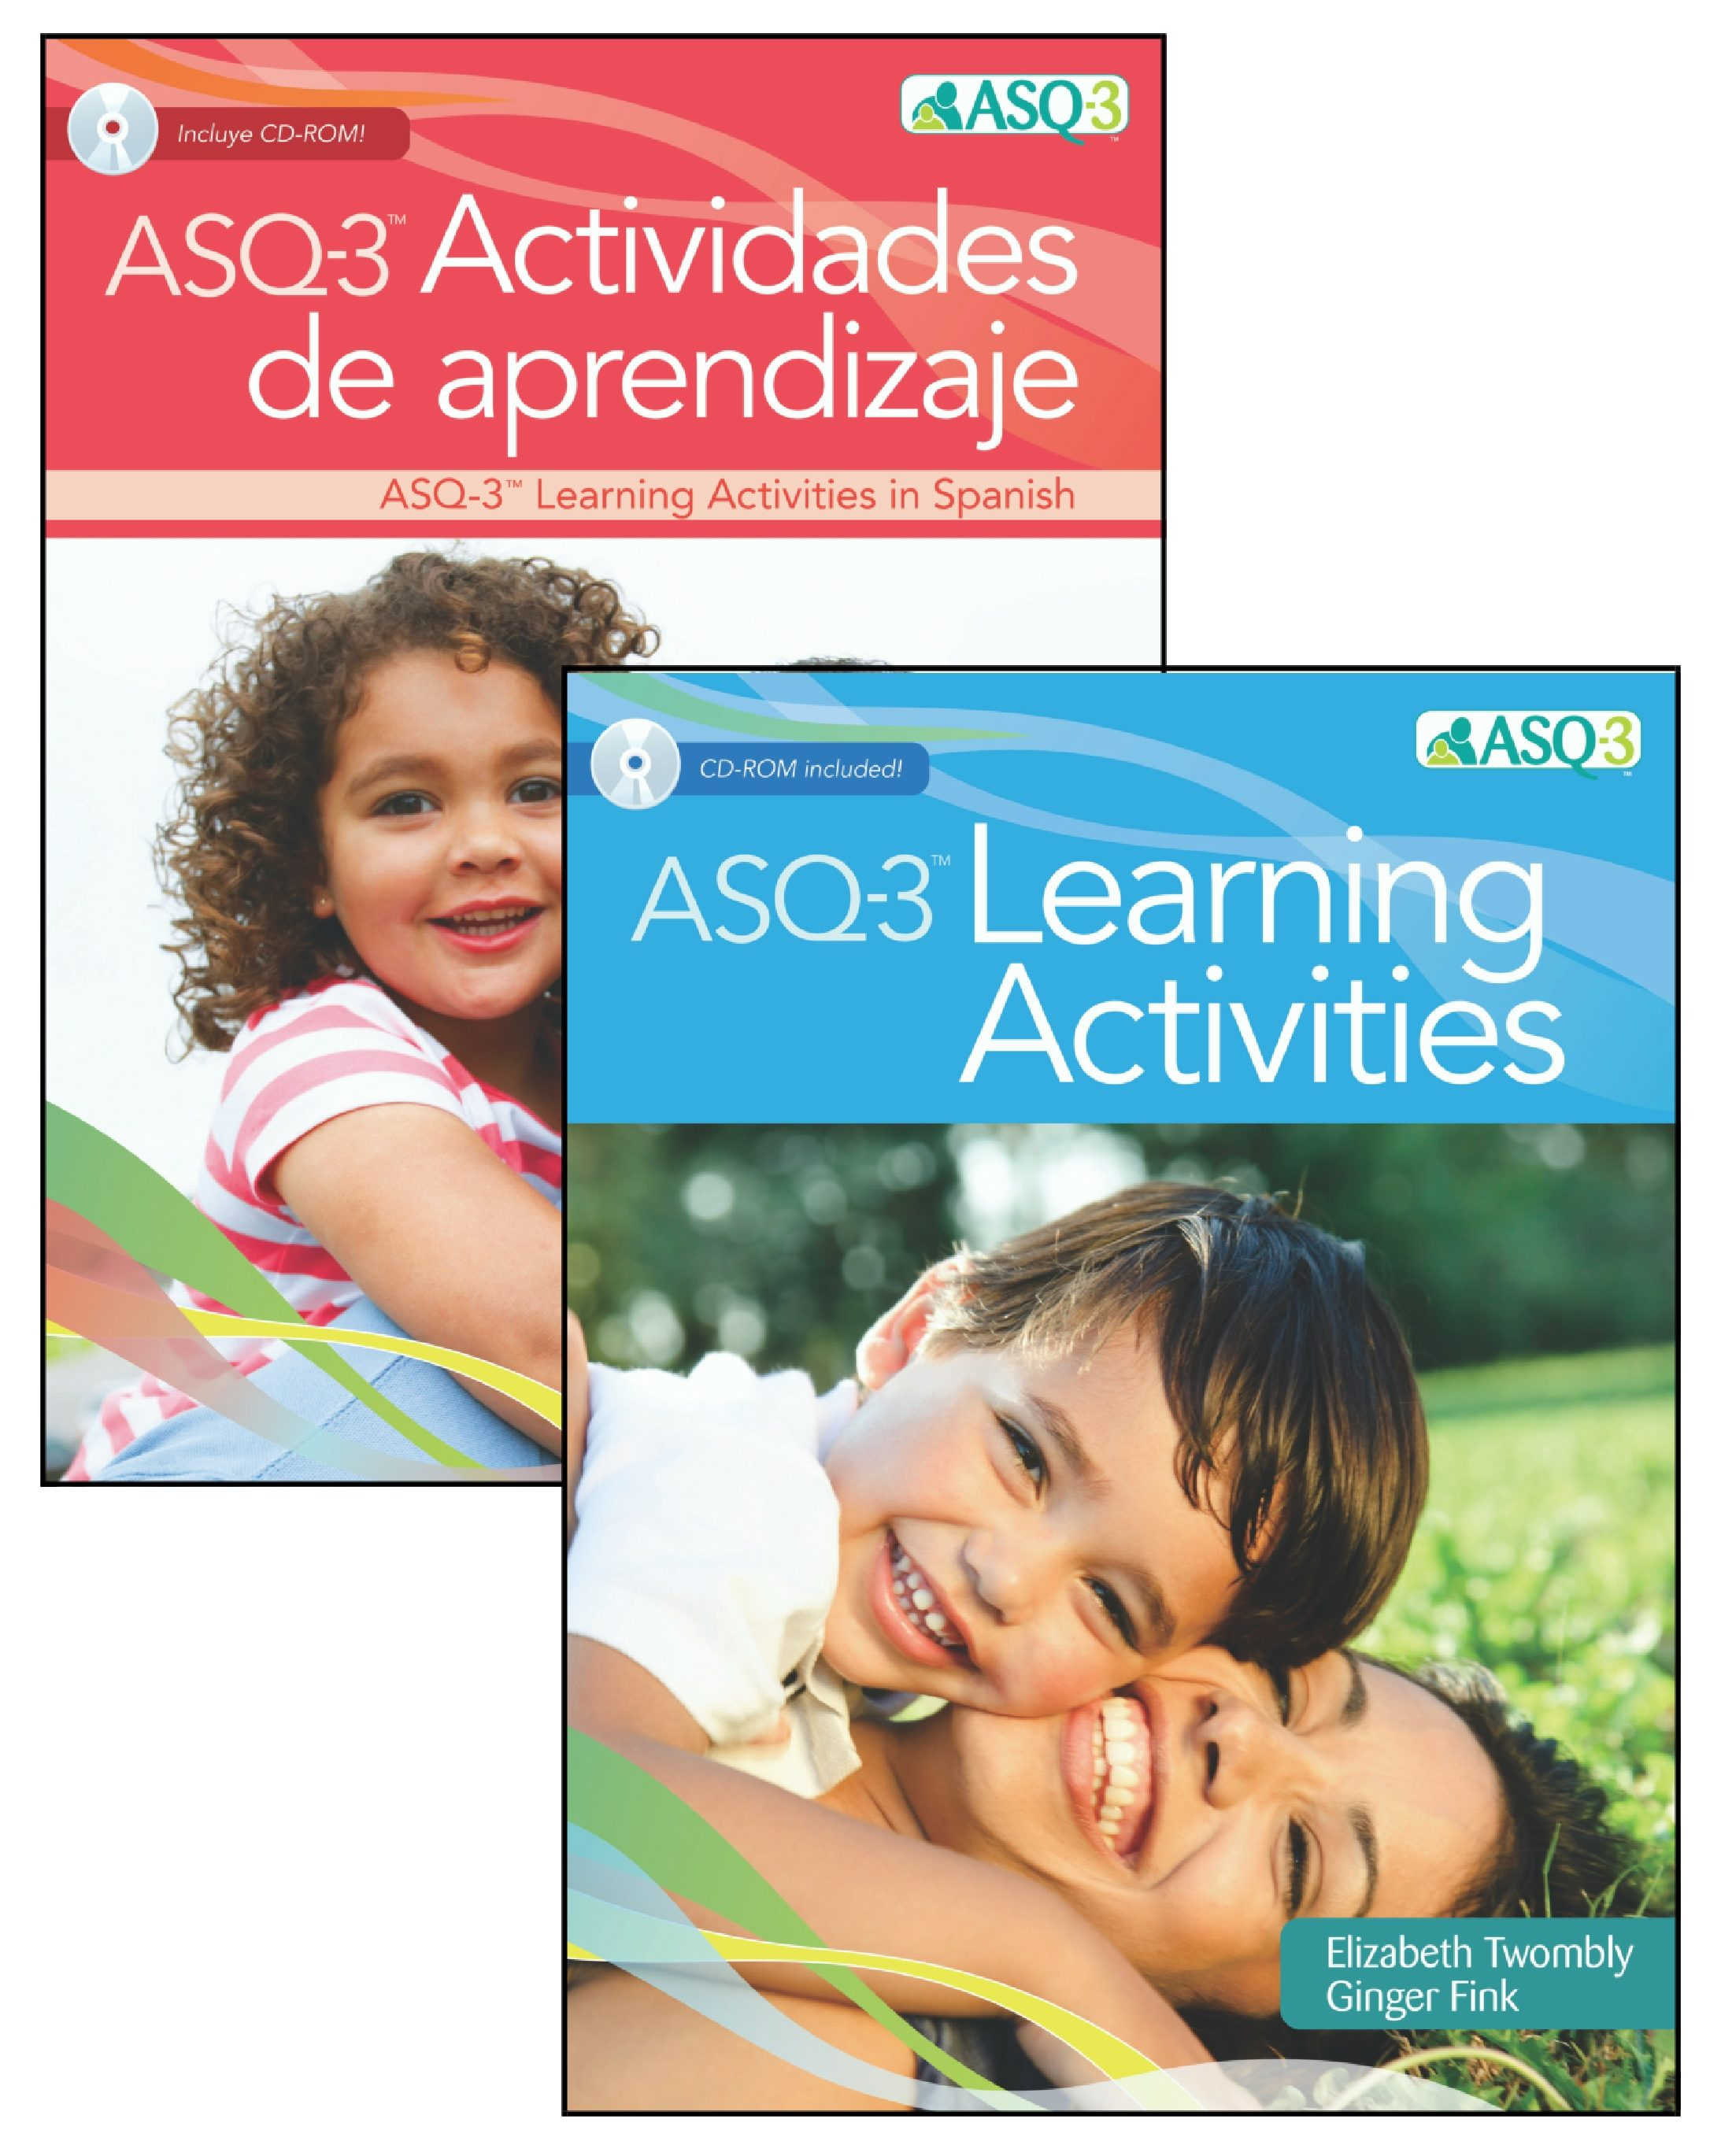 ASQ-3 Learning Activities and ASQ-3 Actividades de aprendizaje